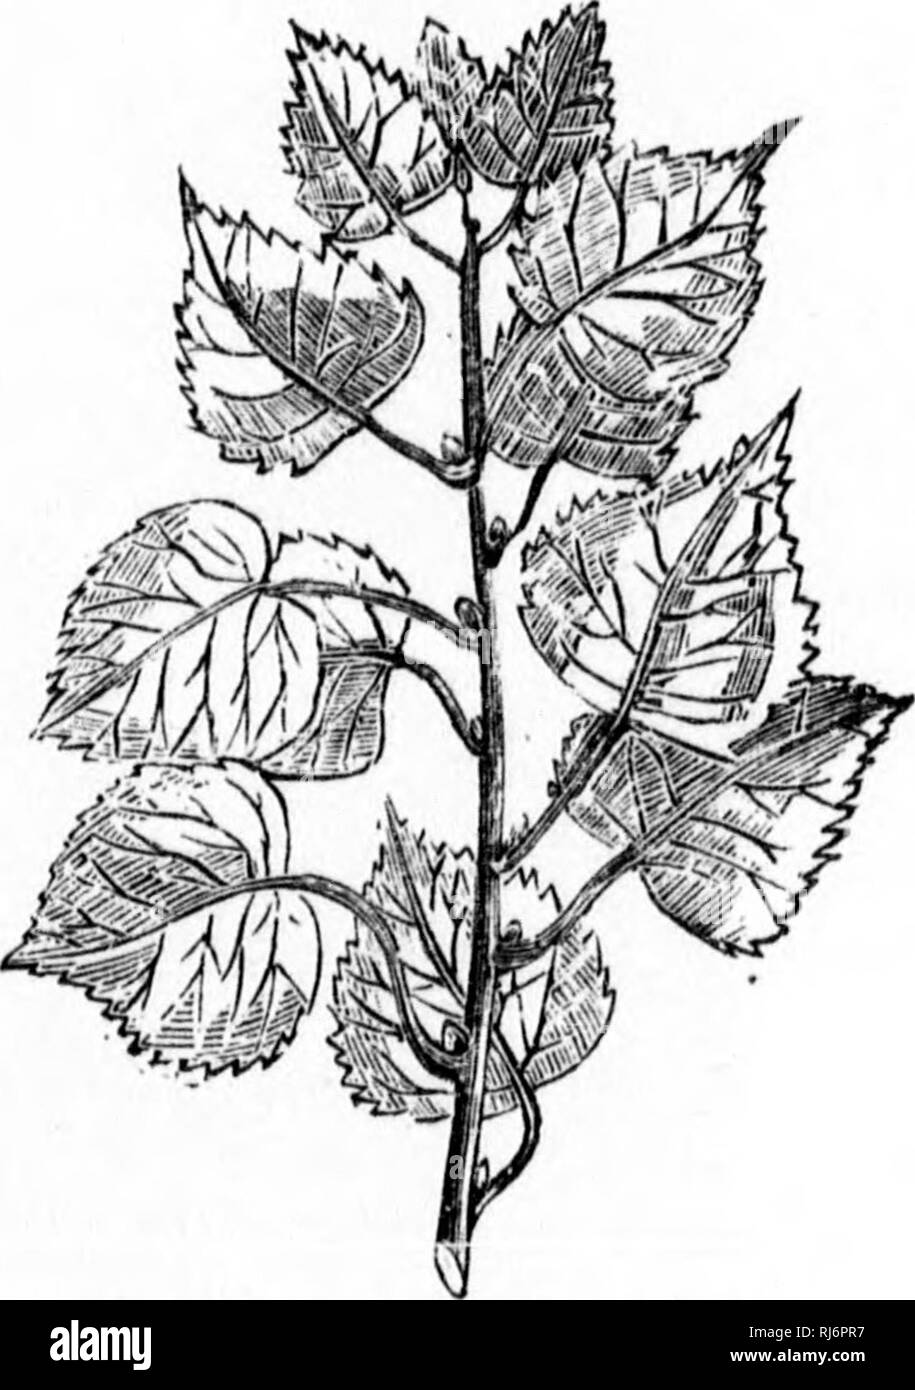 . The Canadian forester's illustrated guide [microform]. Forests and forestry; Forêts et sylviculture. 123.—Leaves of Lombardy poplar. 12a.—Populiis pyramidalis— l^oiubardy puplar. It must be well understood that the ornamental trees I have mentioned must only be planted in those spots which T have before pointed out as suitable to their cultivation. s One word as to ornamental hedges. Where snow is abundant in winter, and where field-mice are trouble' some, the only hedges I cui* recommend are those com- posed of Norway spruce, of firs, of willows, and of arbor. Please note that these images  - Stock Image